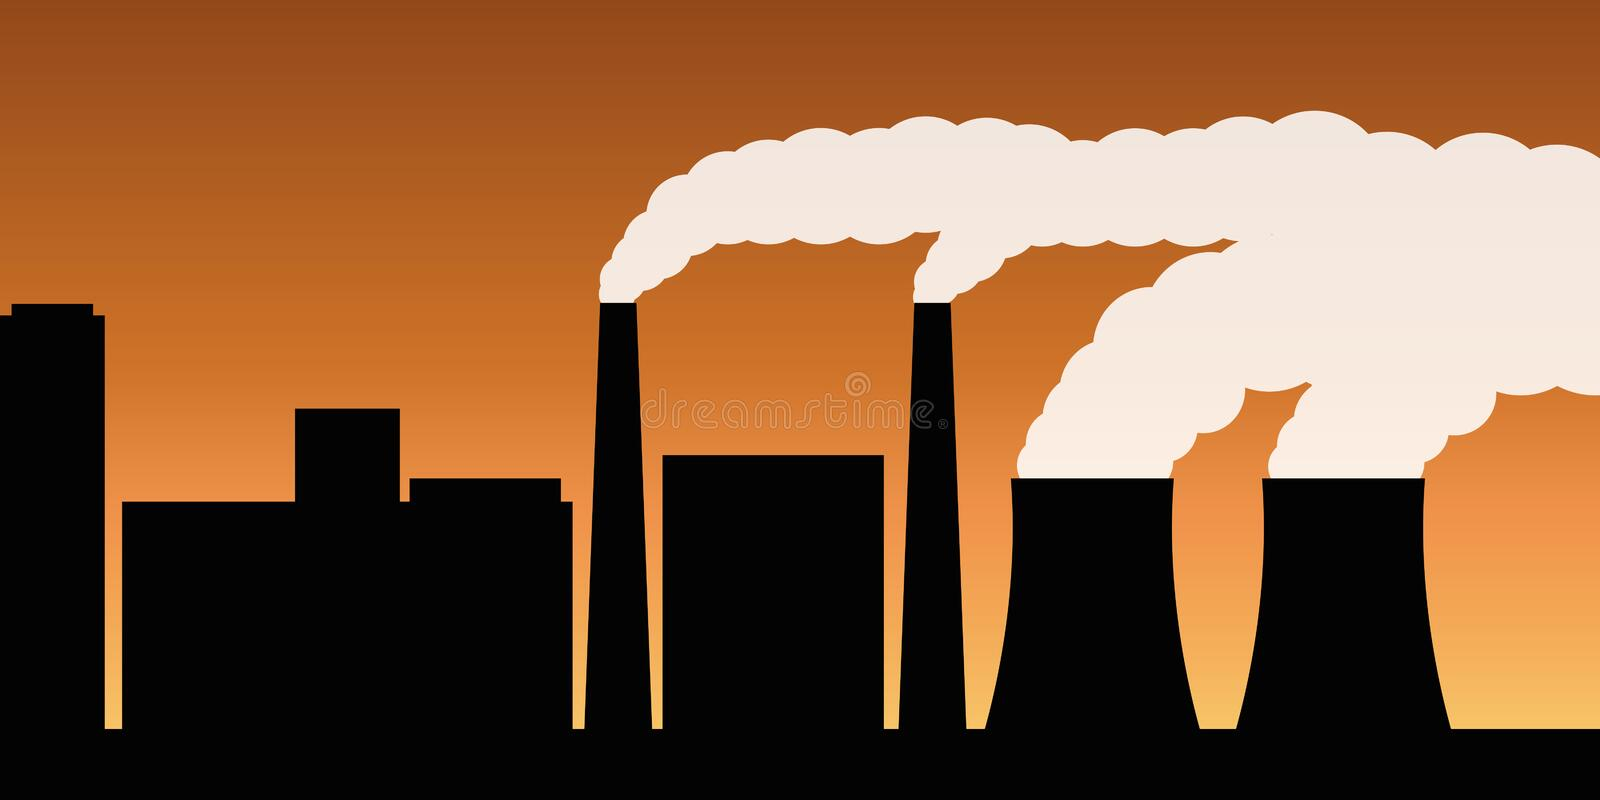 City silhouette with industry air pollution smog and noxious gas emission stock illustration